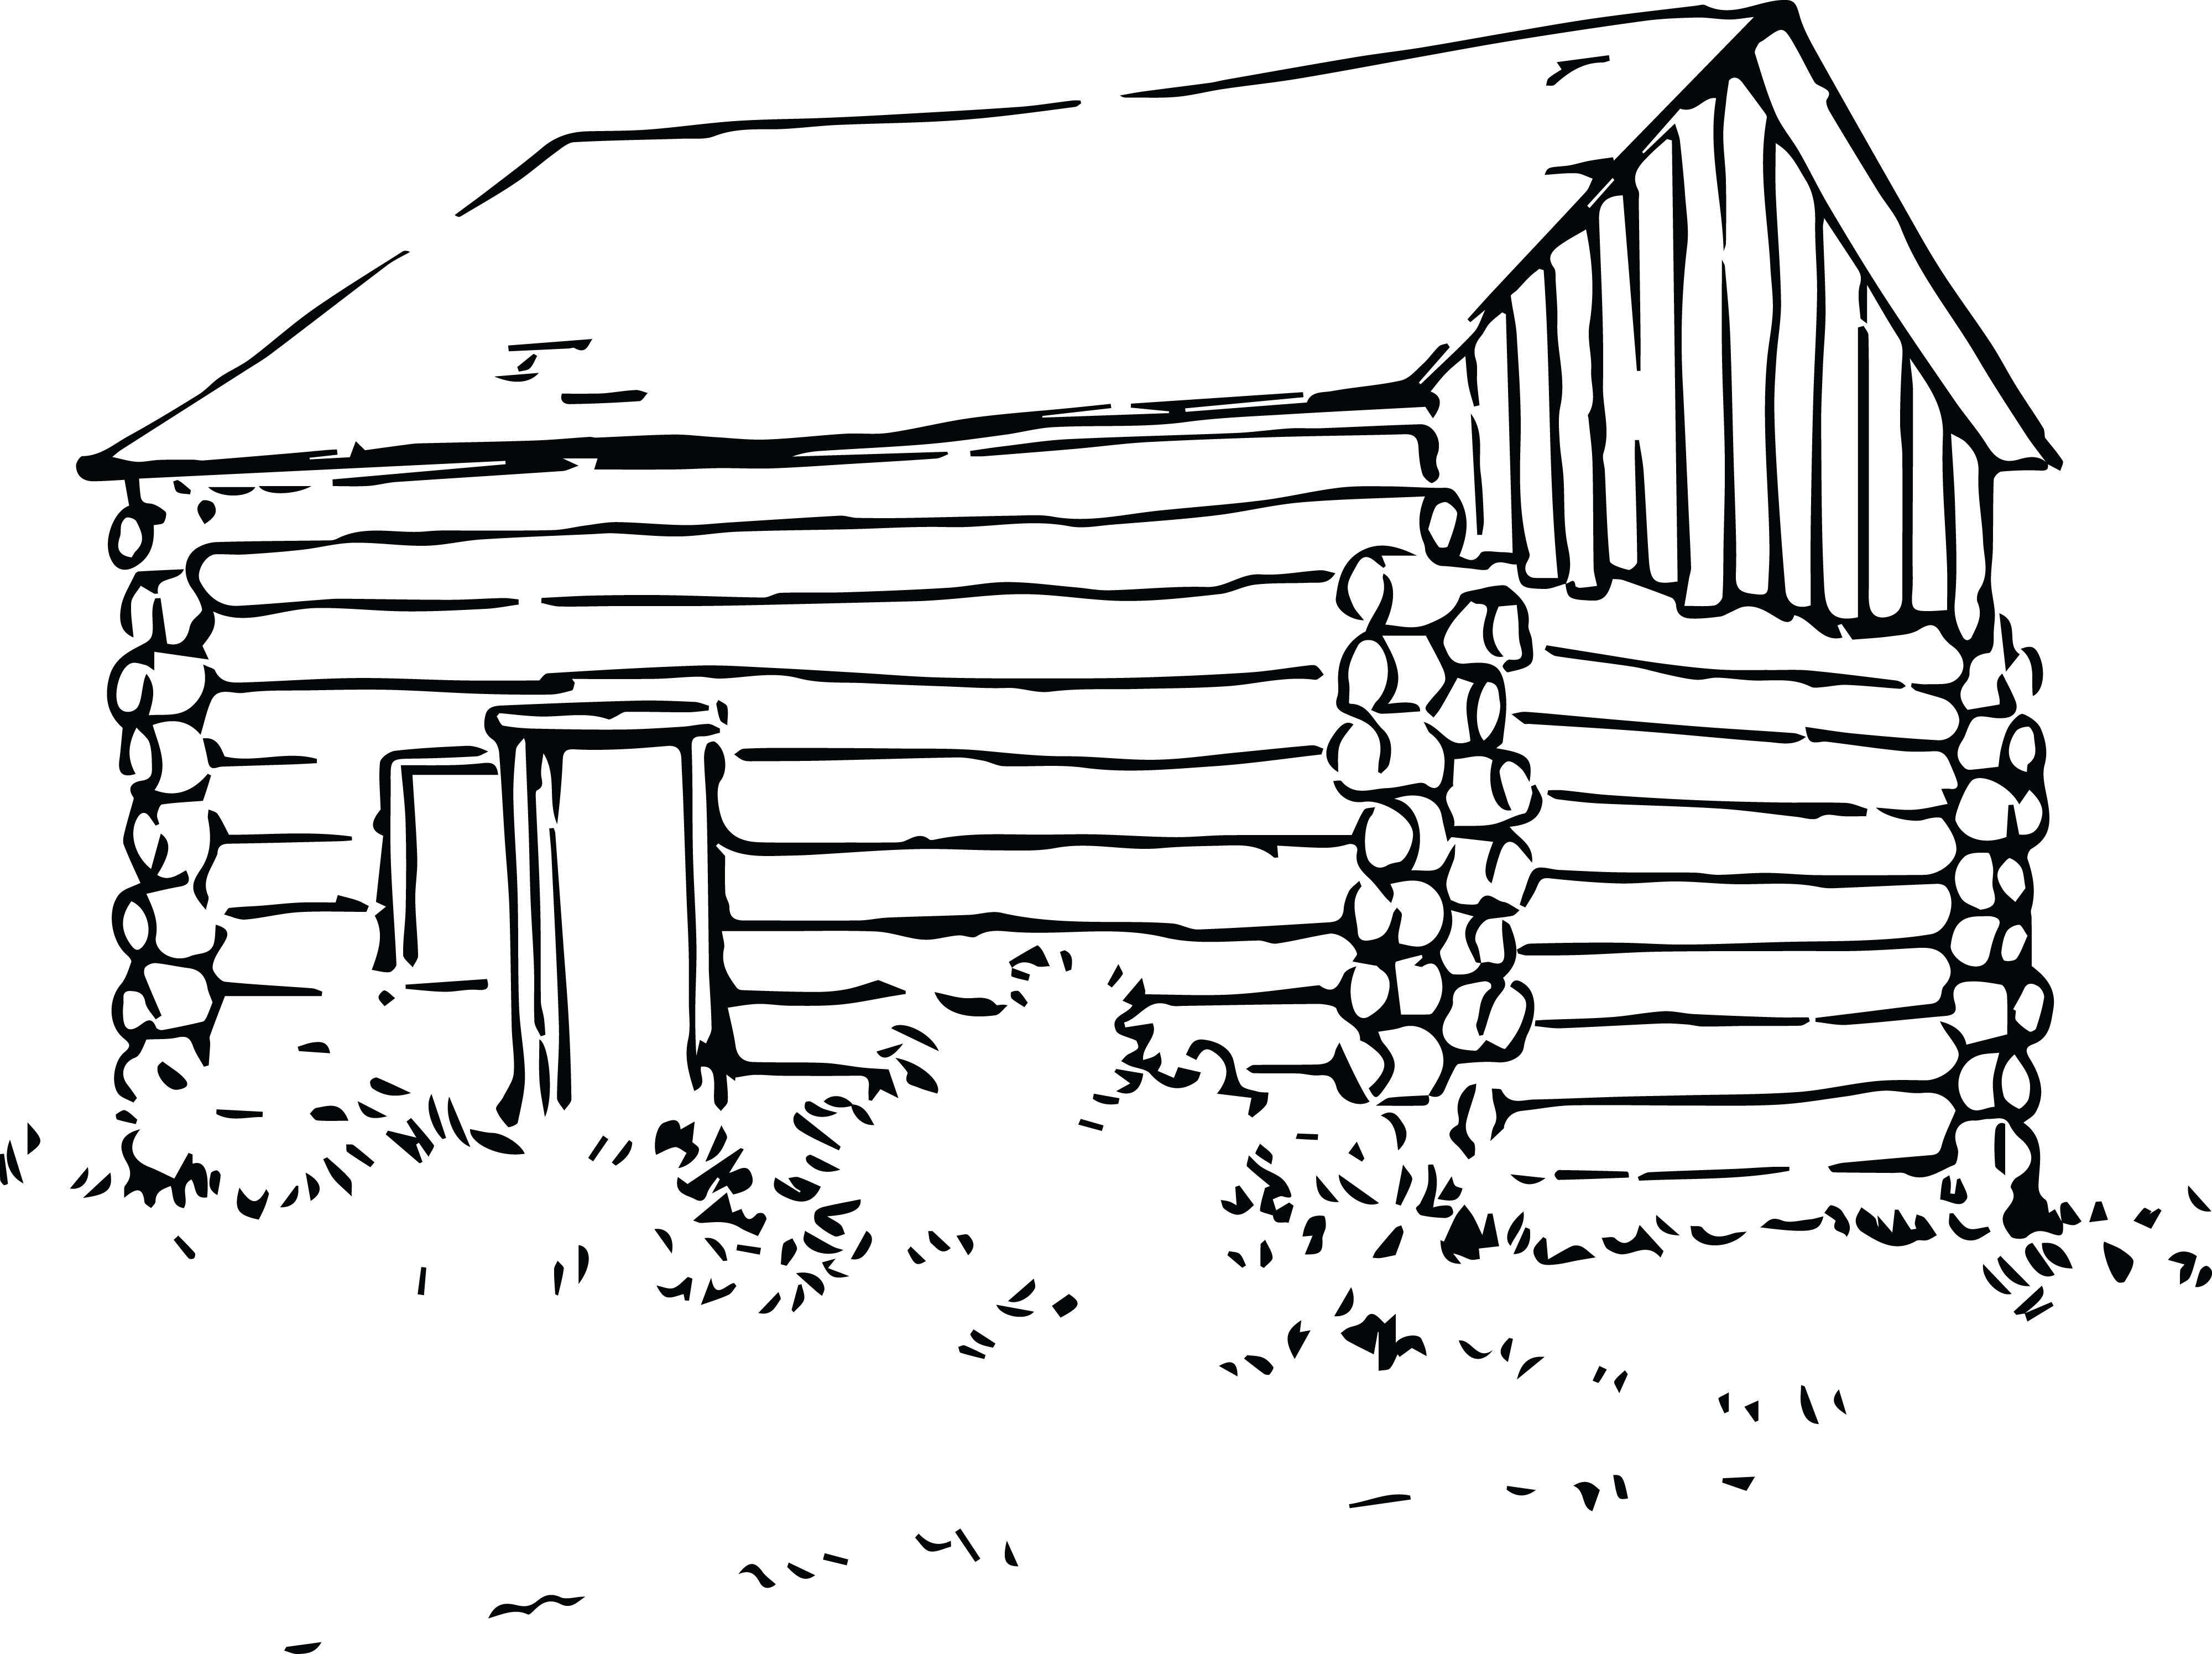 Free Clipart Of A log cabin.